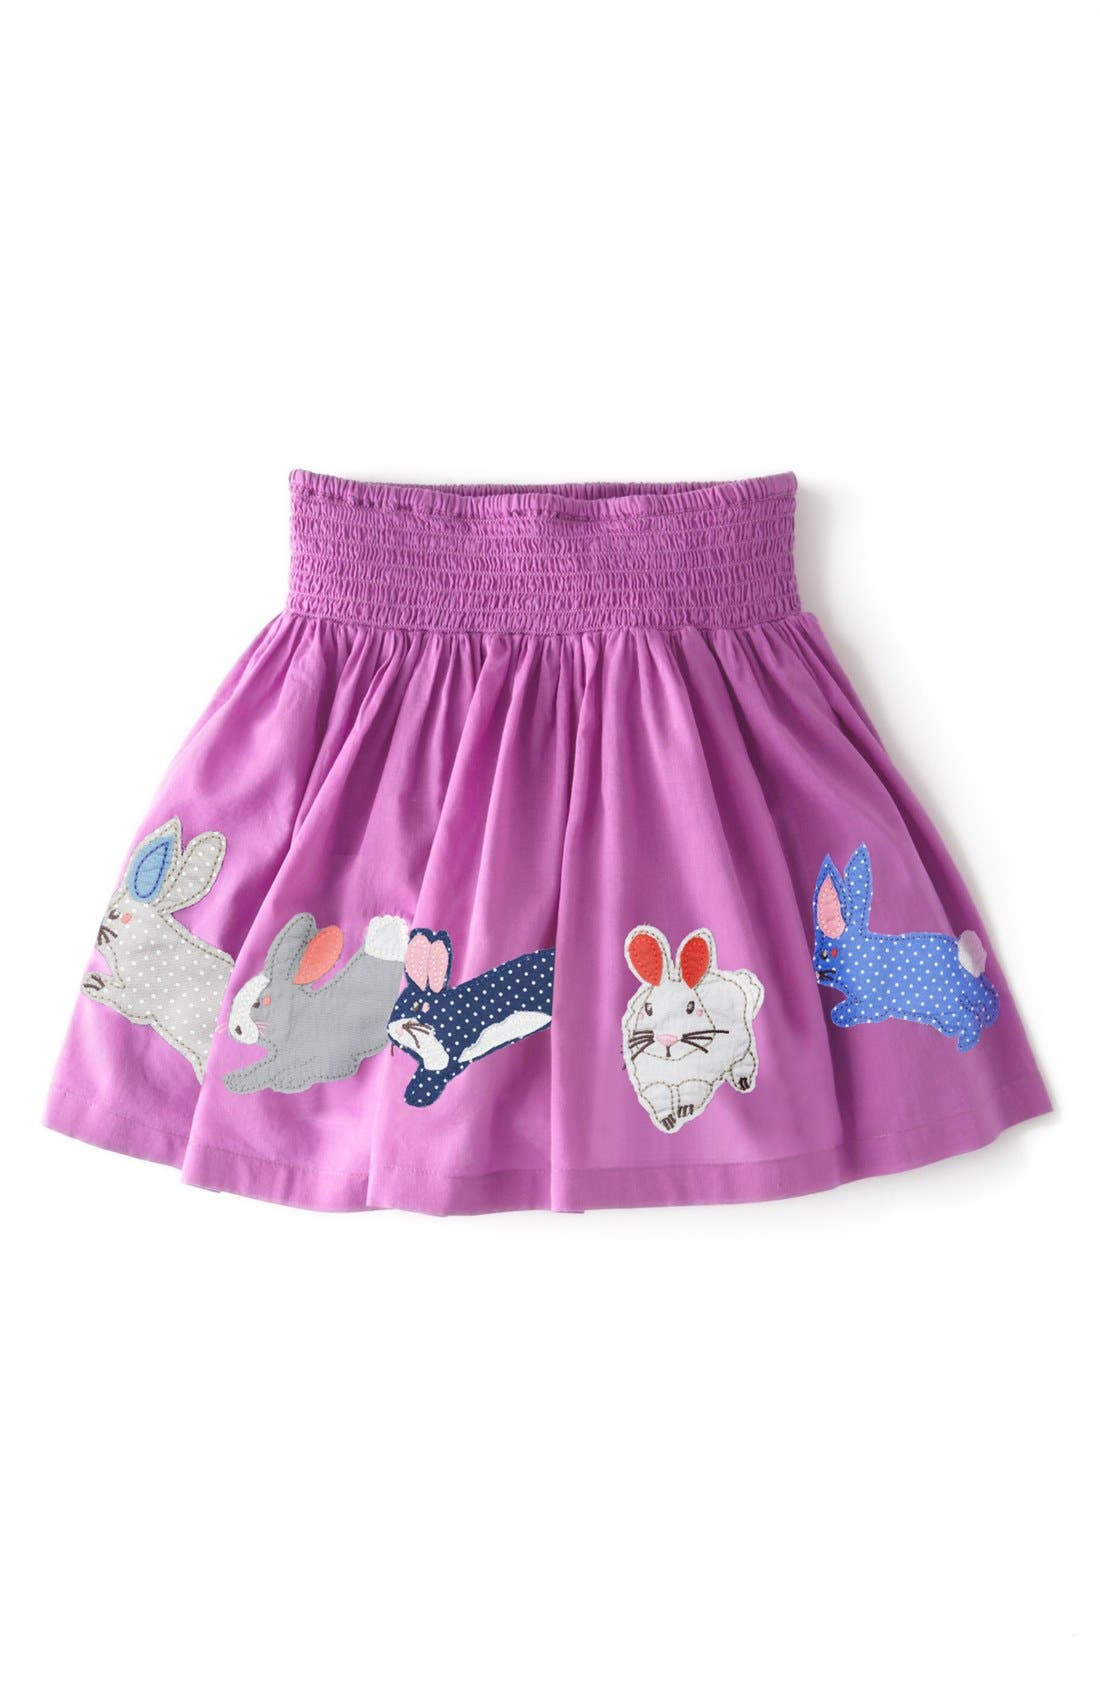 Main Image - Mini Boden Fun Appliqué Skirt (Toddler Girls, Little Girls & Big Girls)(Online Only)